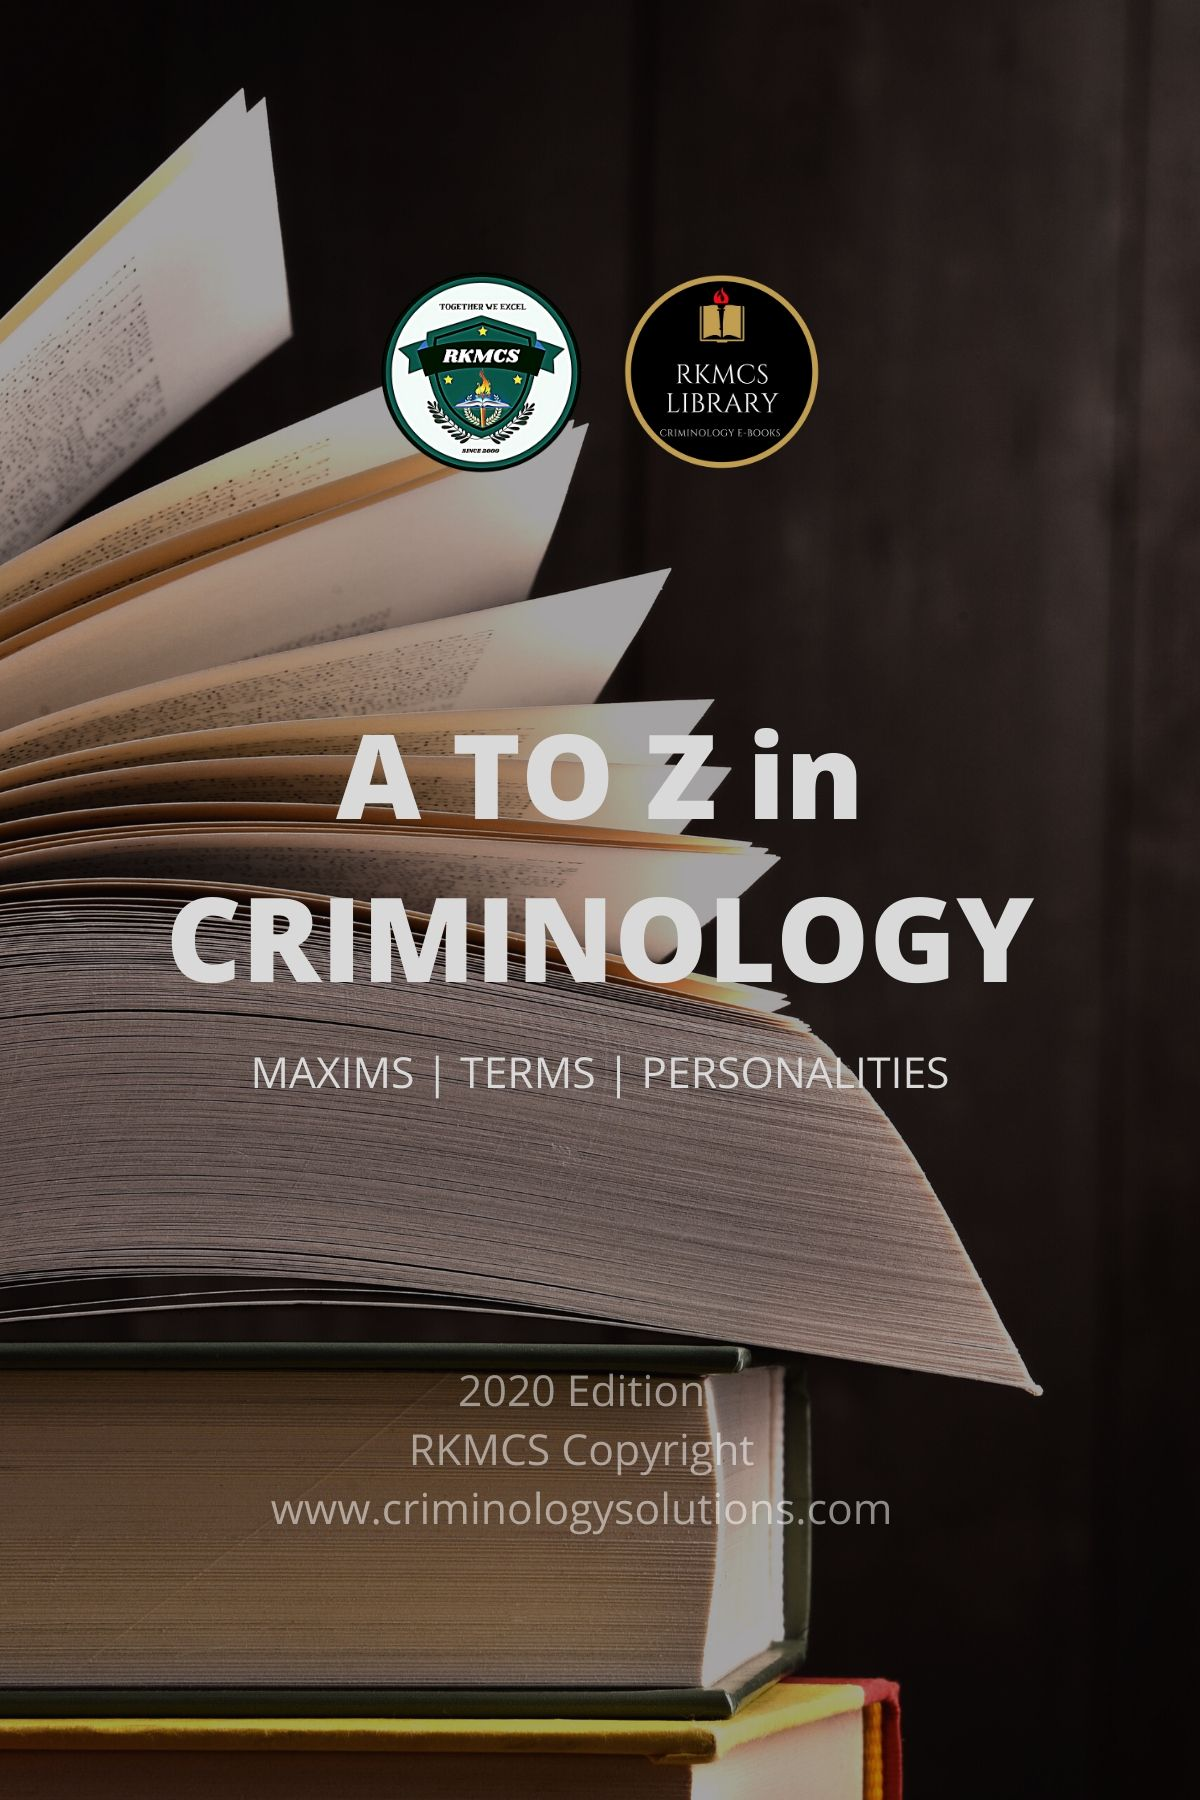 A TO Z IN CRIMINOLOGY